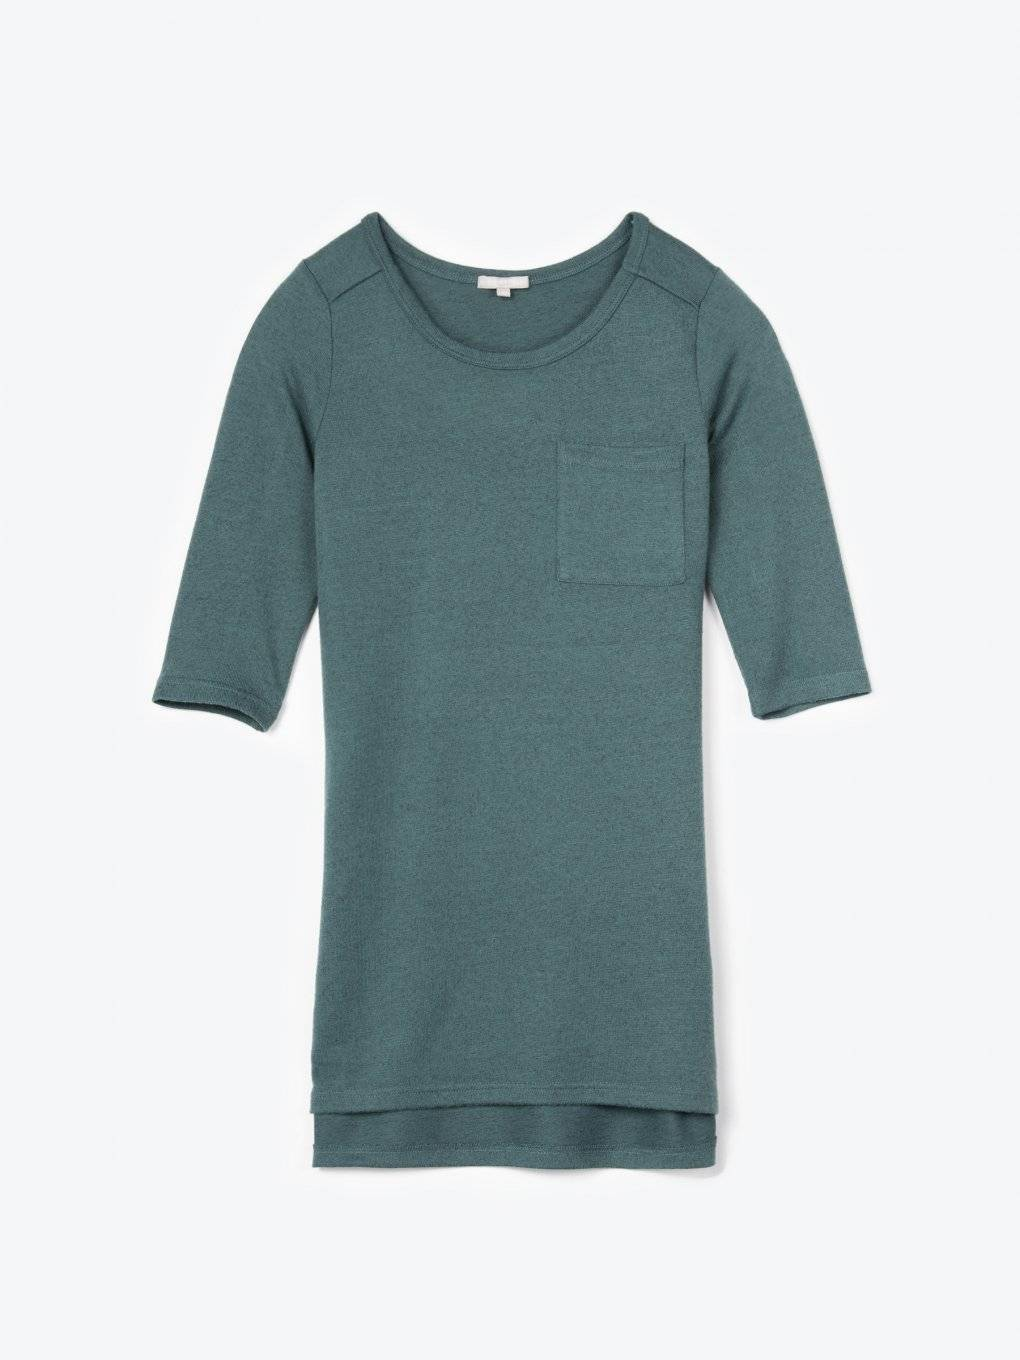 Longline top with chest pocket